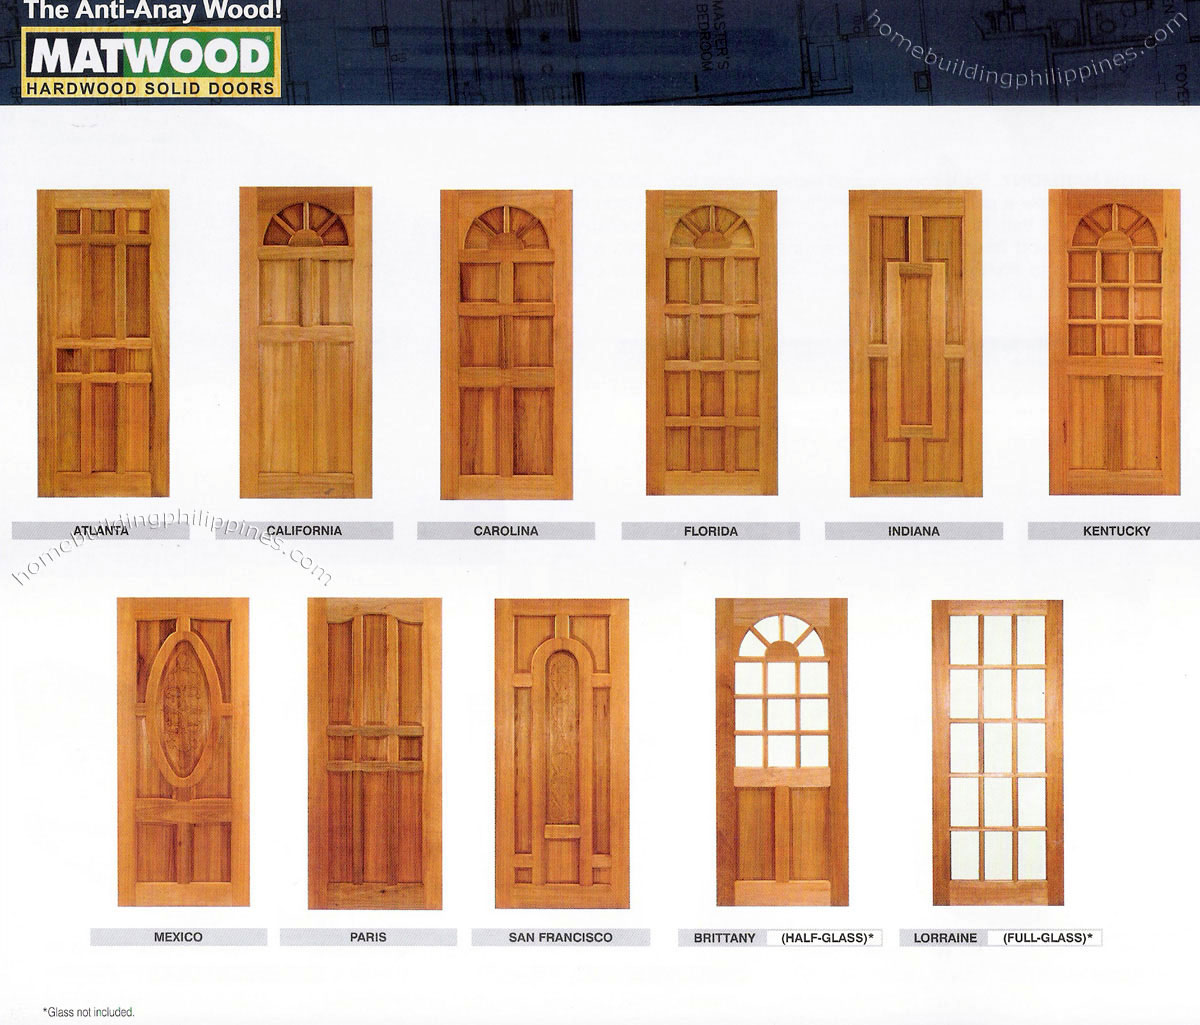 Interior design professional interior designer home design plans - Solid Hardwood Doors Wood Door Design Philippines